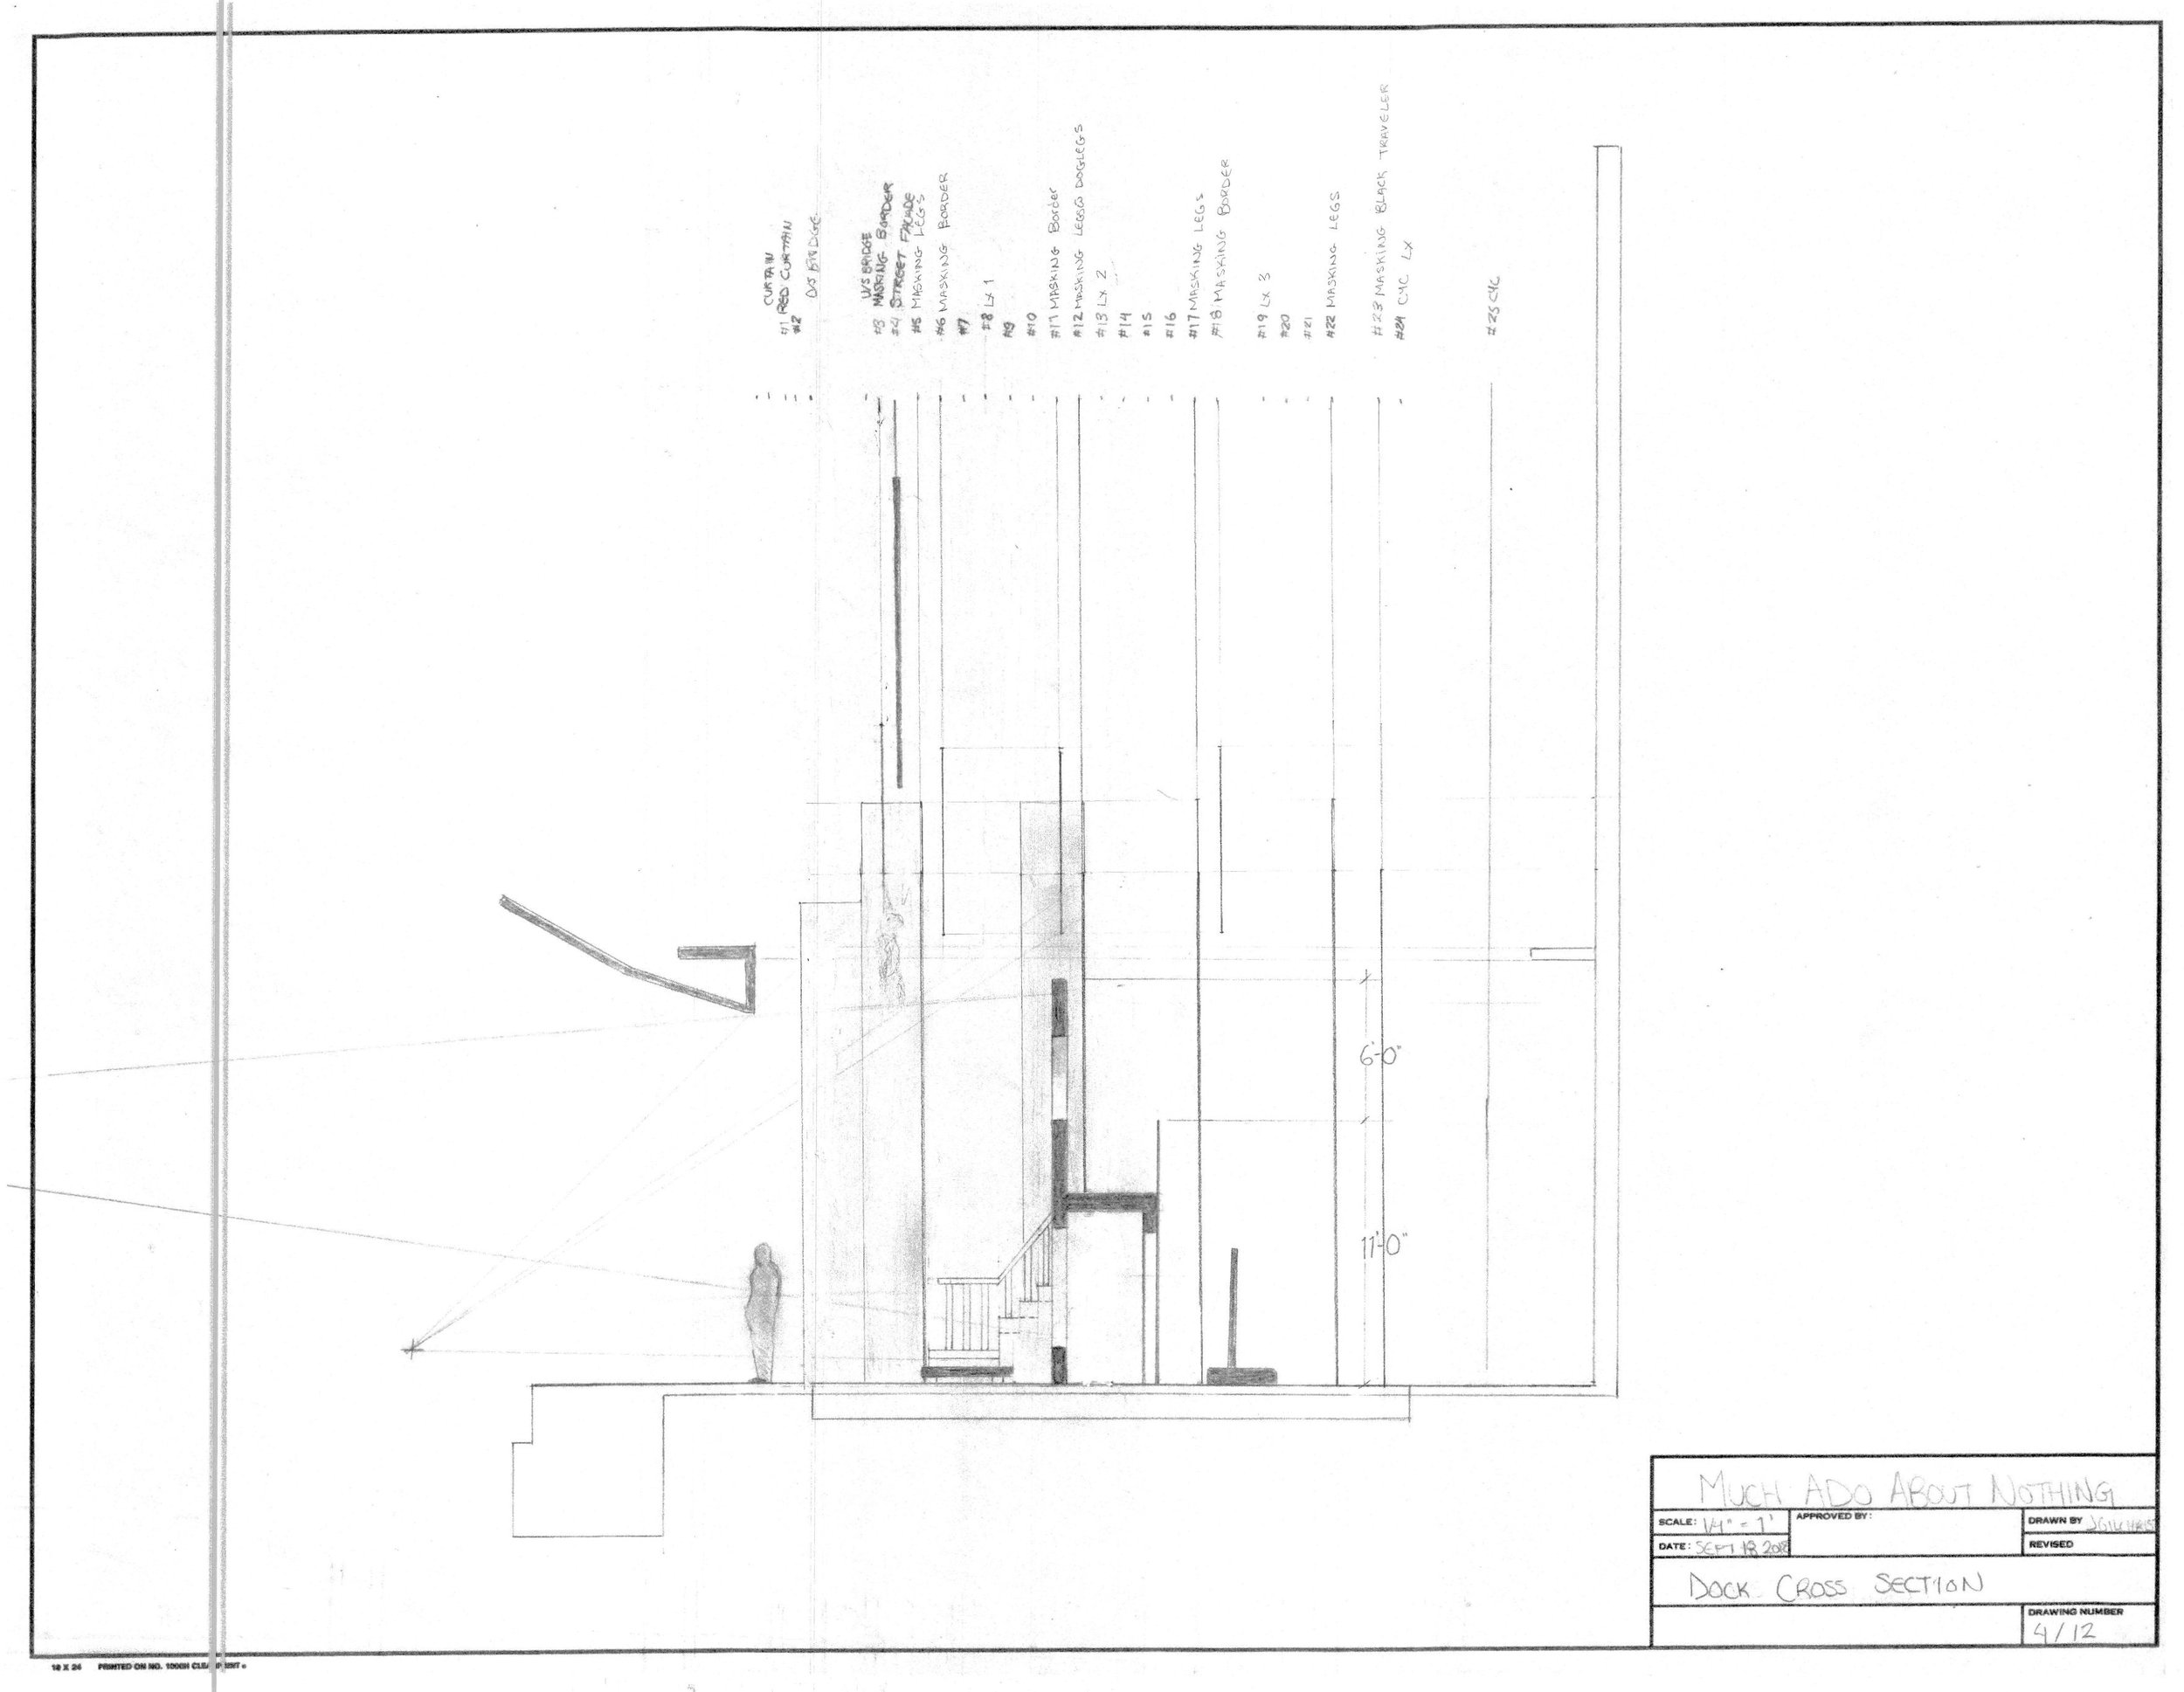 04 Dock Cross Section M-page-001.jpg